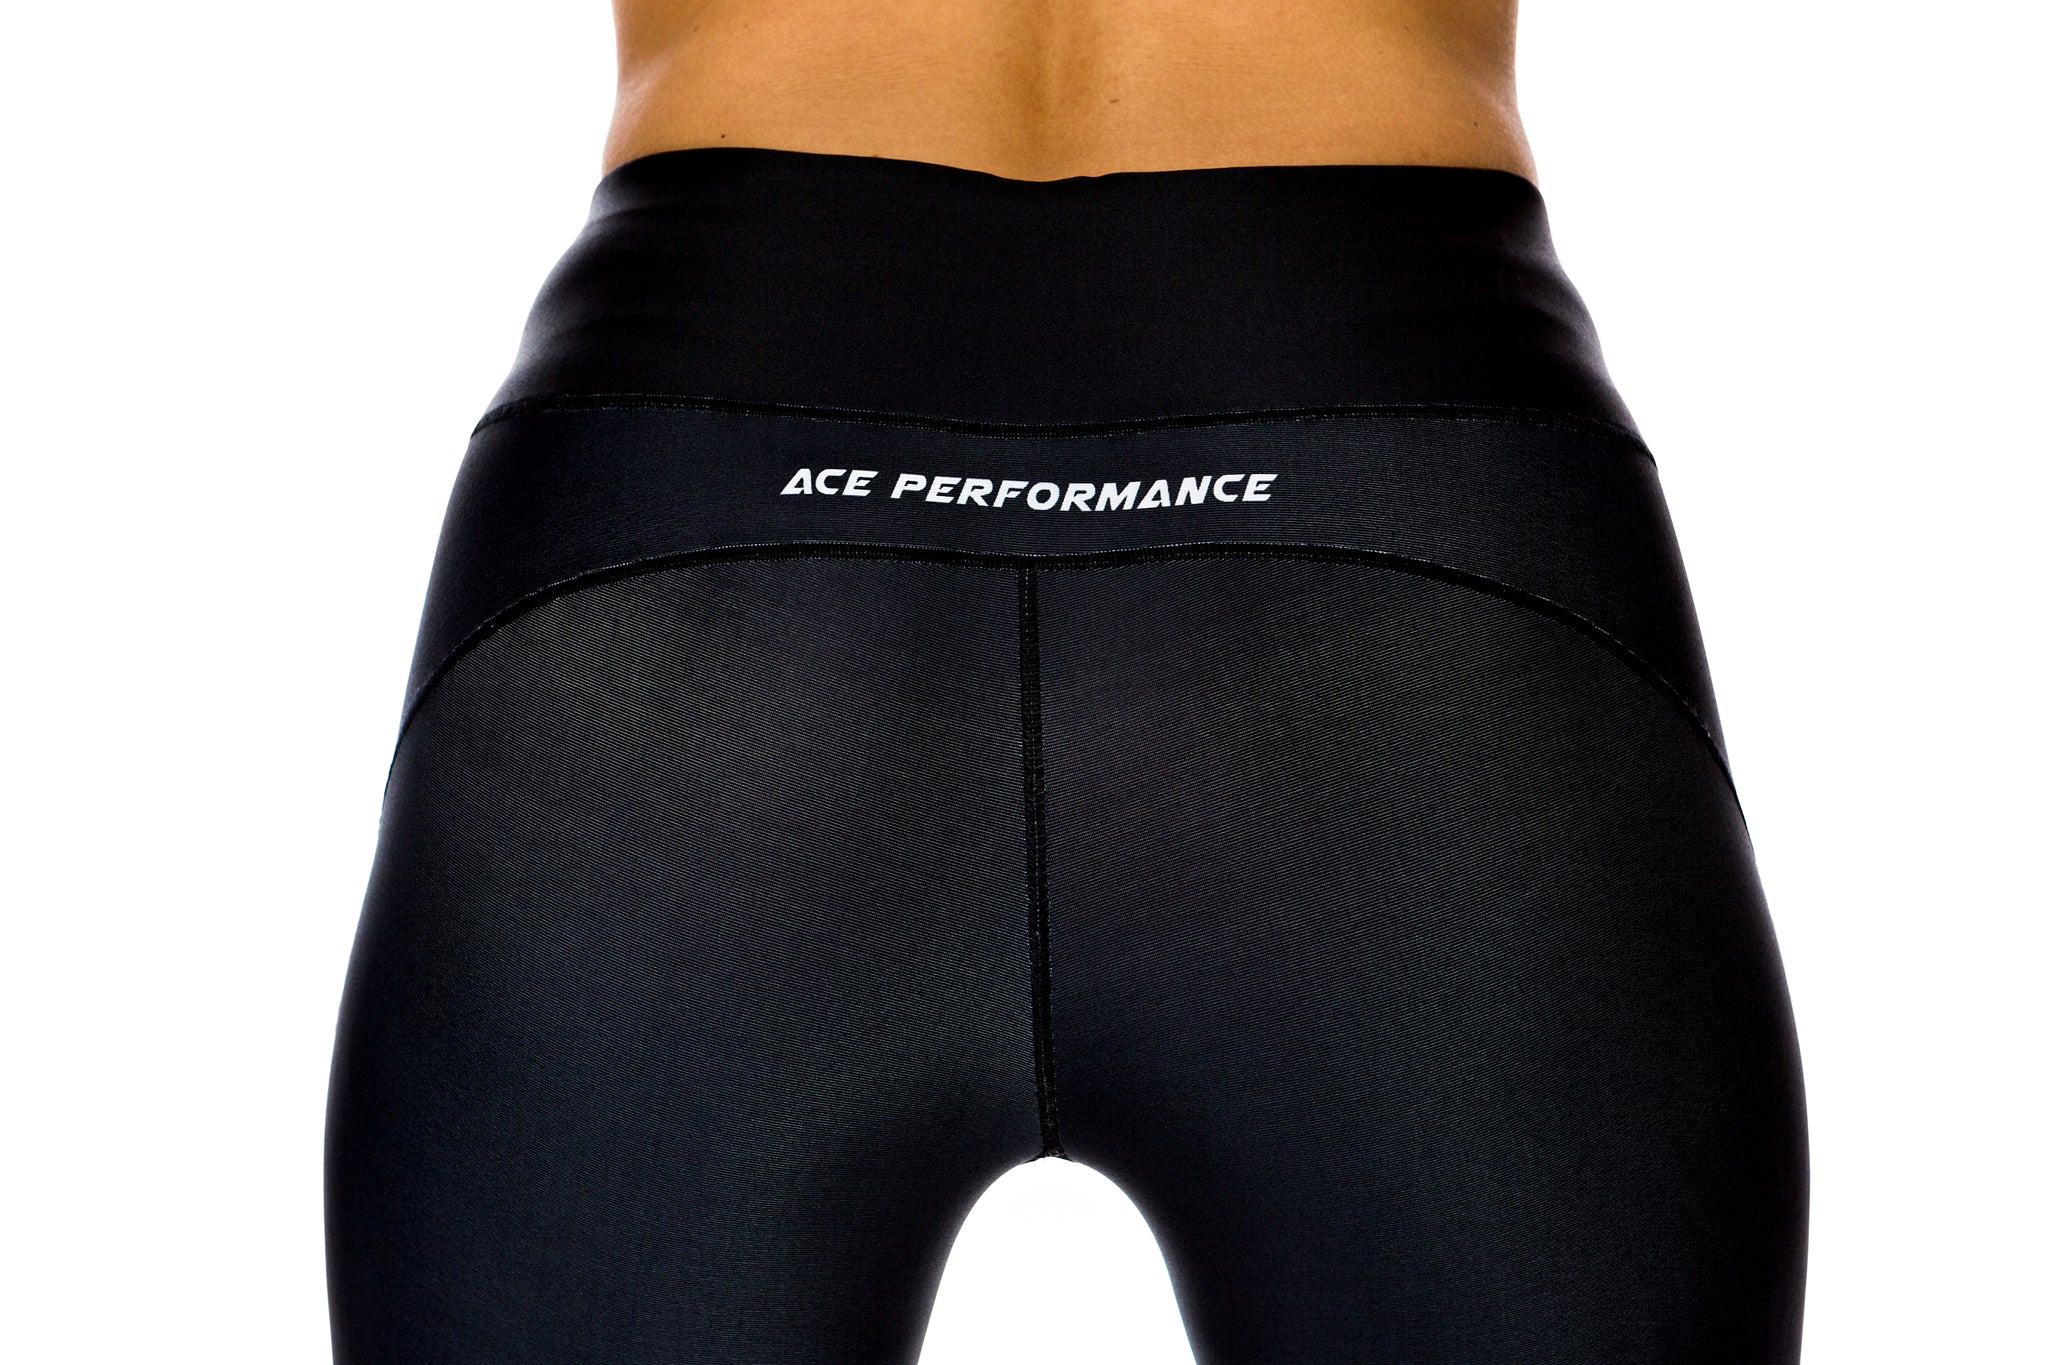 WOMENS LEGGINGS - ACE BLACK GREY - ACEPERFORMANCE